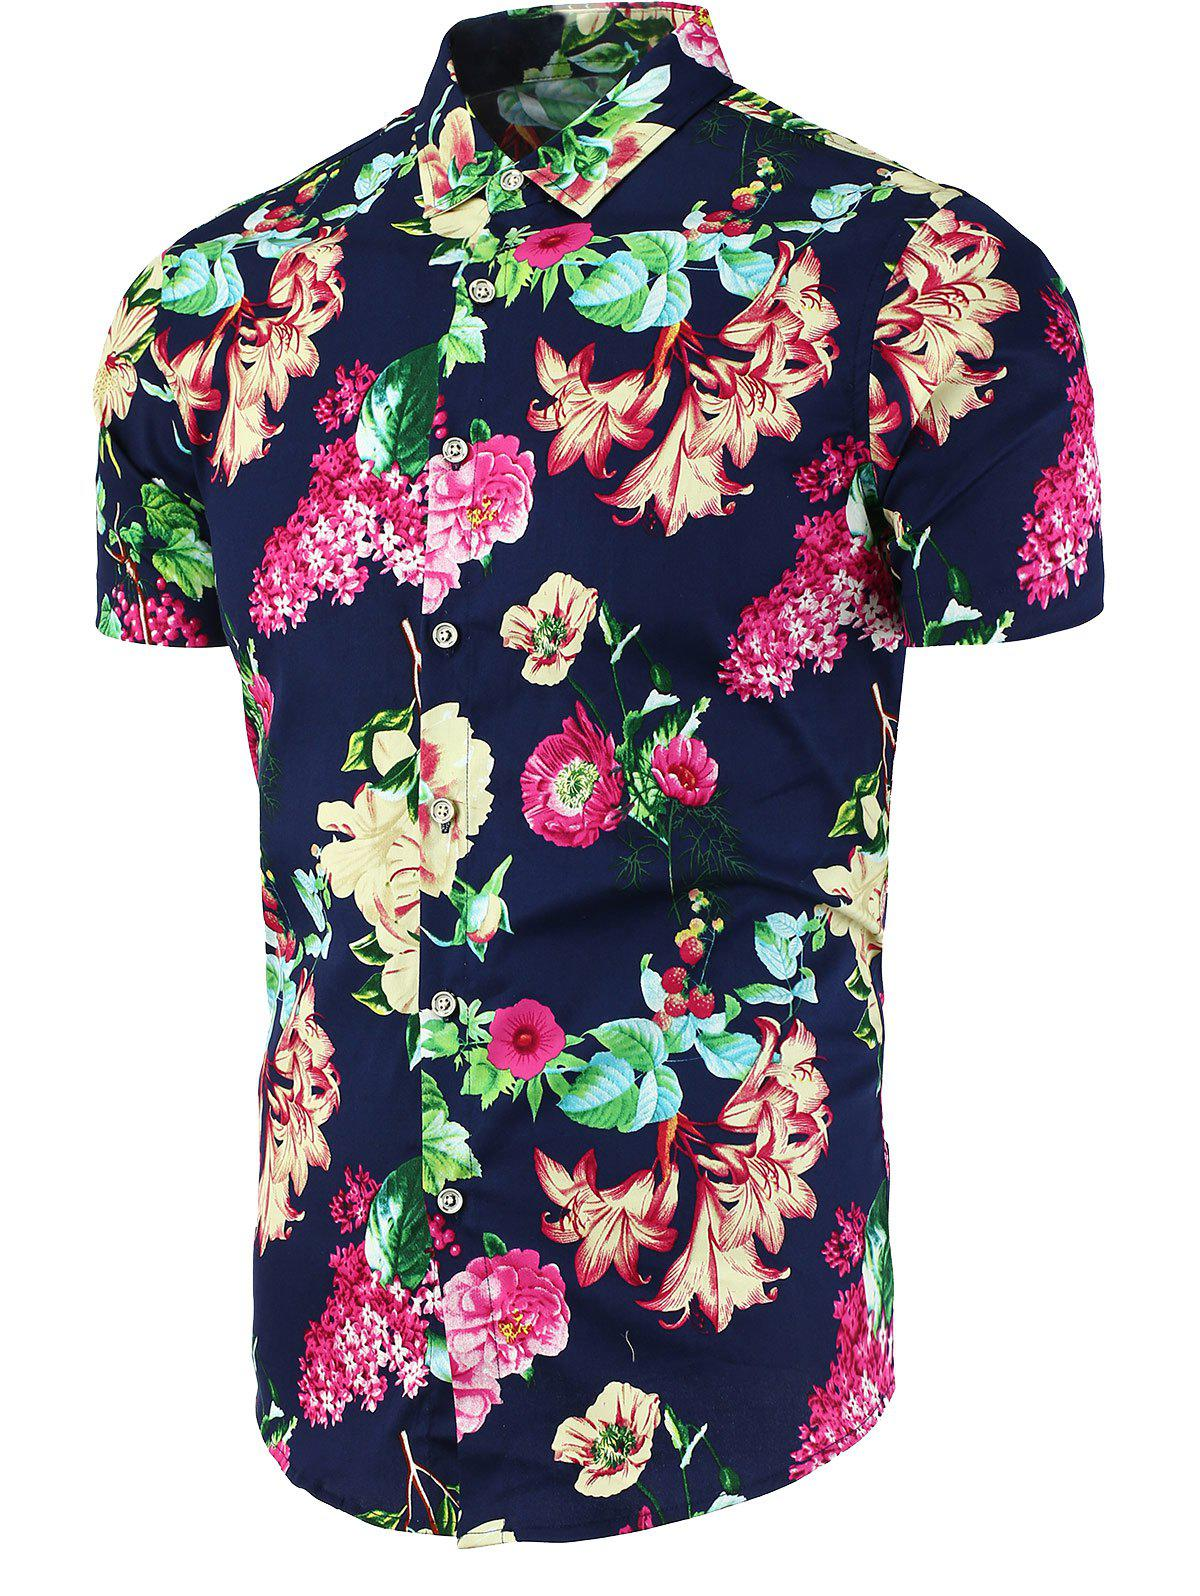 2018 floral print button up shirt cadetblue l in shirts for Floral print button up shirt